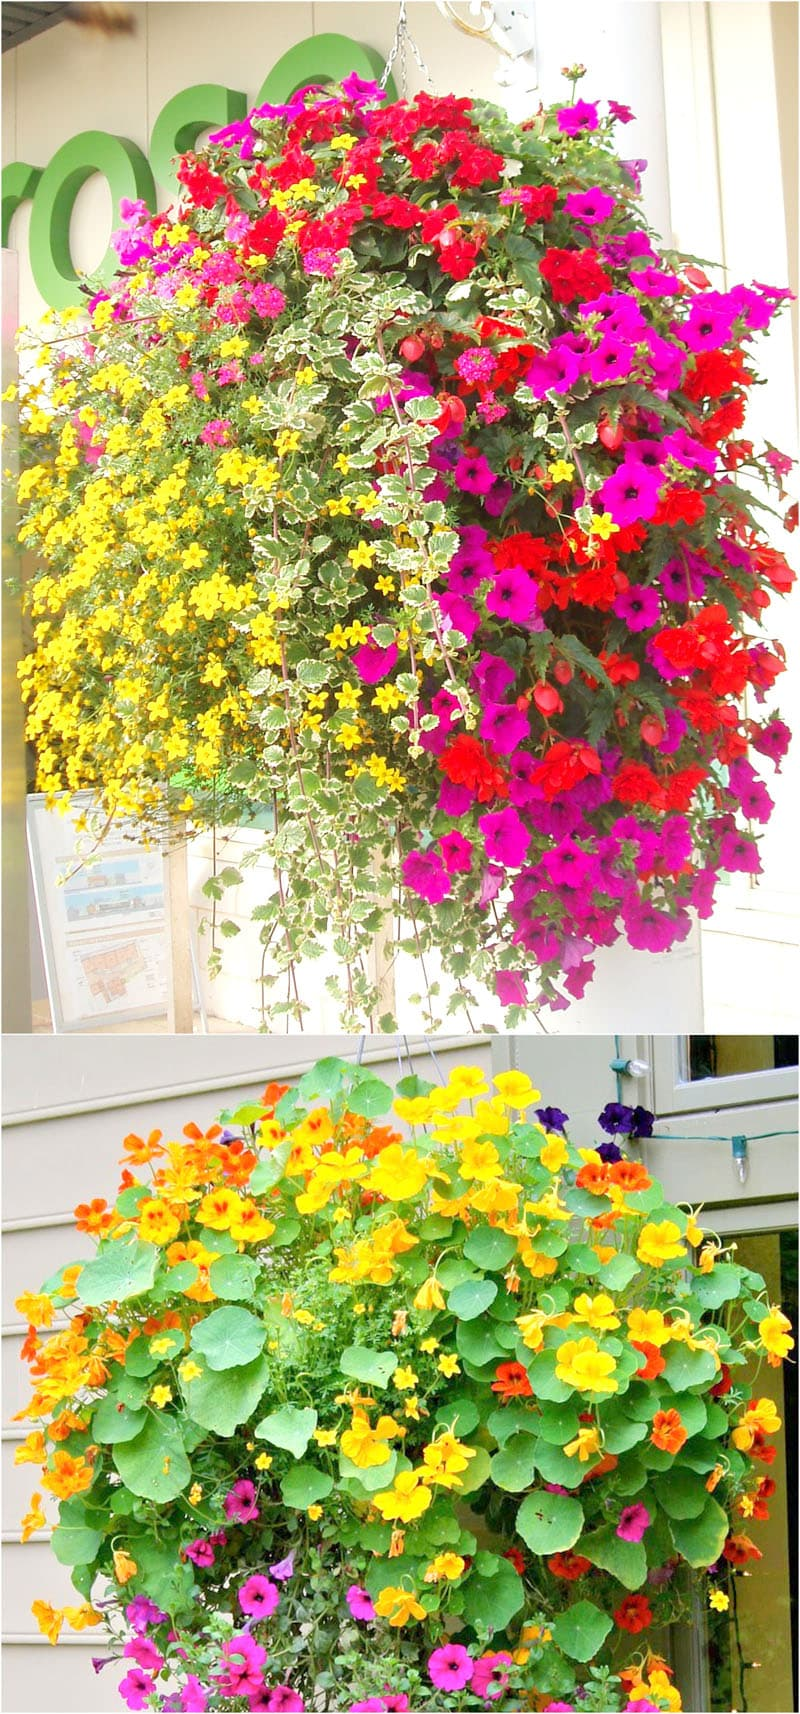 Best Plants And Flowers For Hanging Baskets In Full Sun Or Half Day